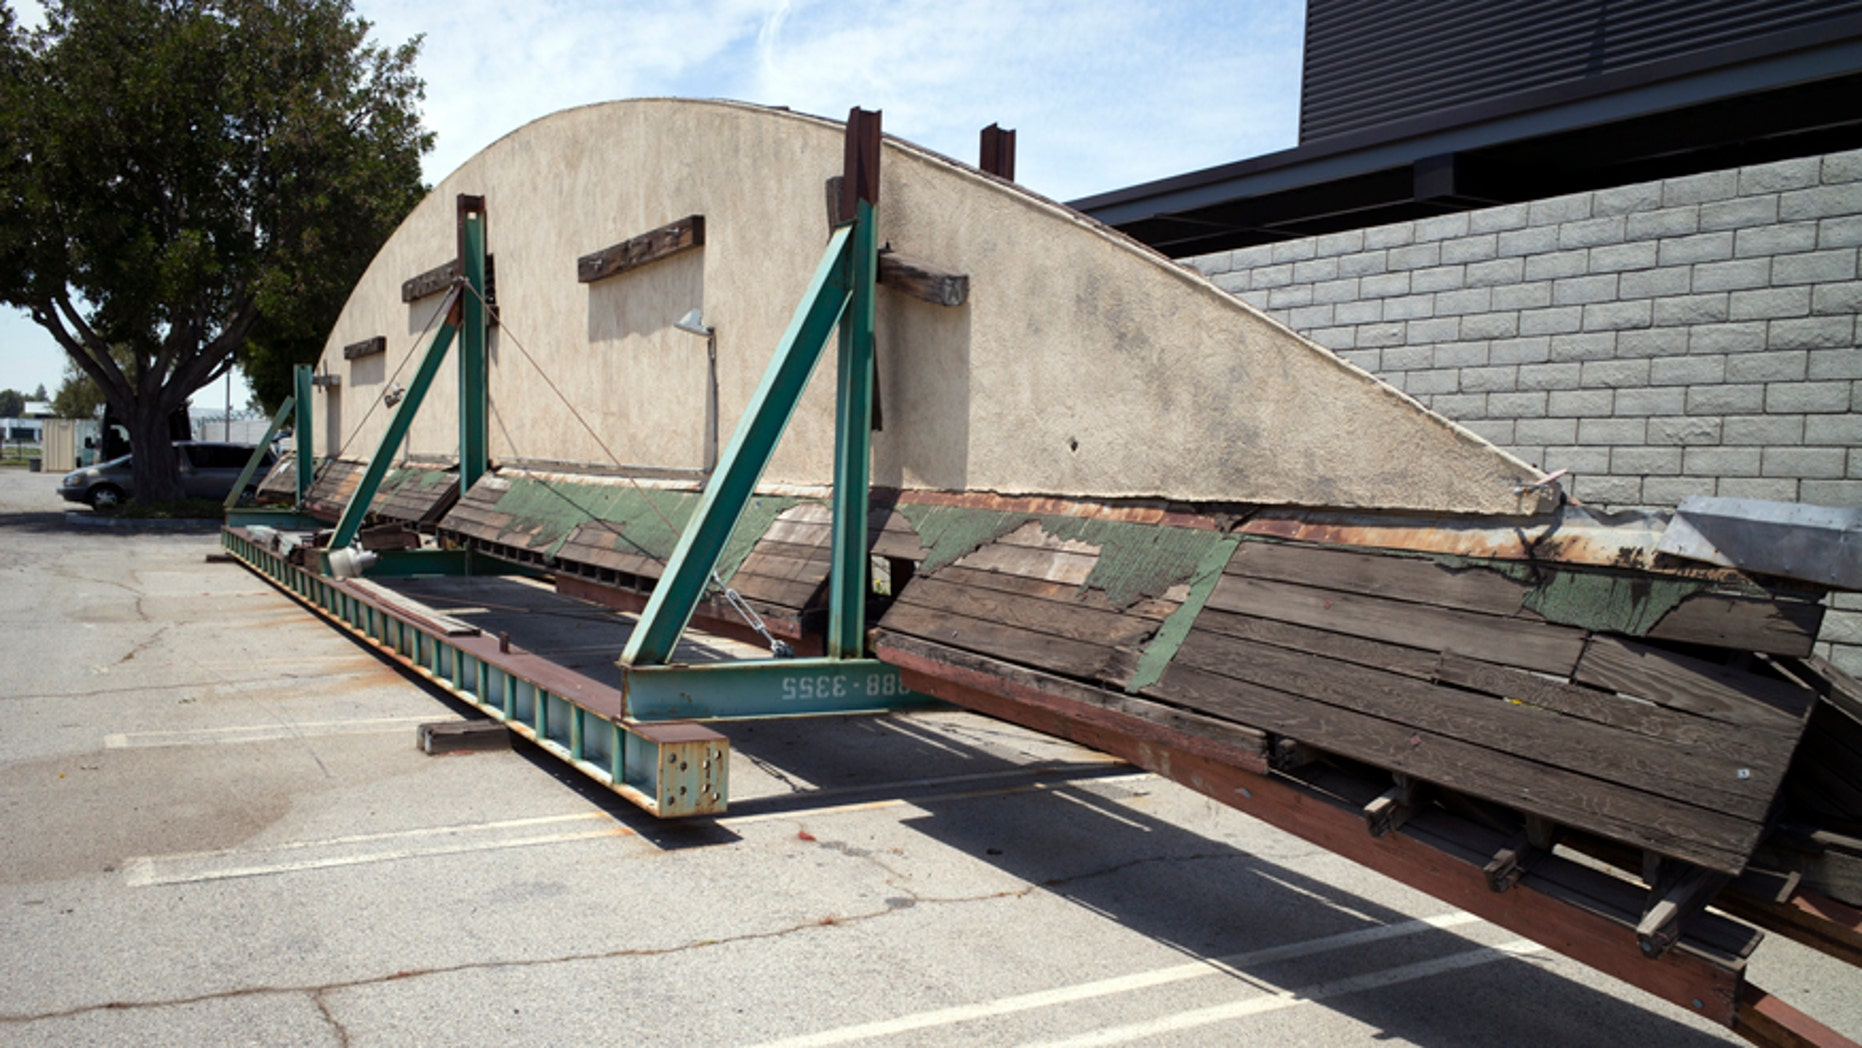 """This May 23, 2017, photo shows part of the disassembled hangar facade that framed the opening scene of the 1942 film """"Casablanca,"""" where it is stored in a parking lot at Van Nuys Airport in Los Angeles' San Fernando Valley. Christine Dunn, who with her late husband recovered the hangar 10 years ago, told the Daily News on Sunday, May 28, that it'll be moved to Valley Relics Museum, home to many pop culture items."""